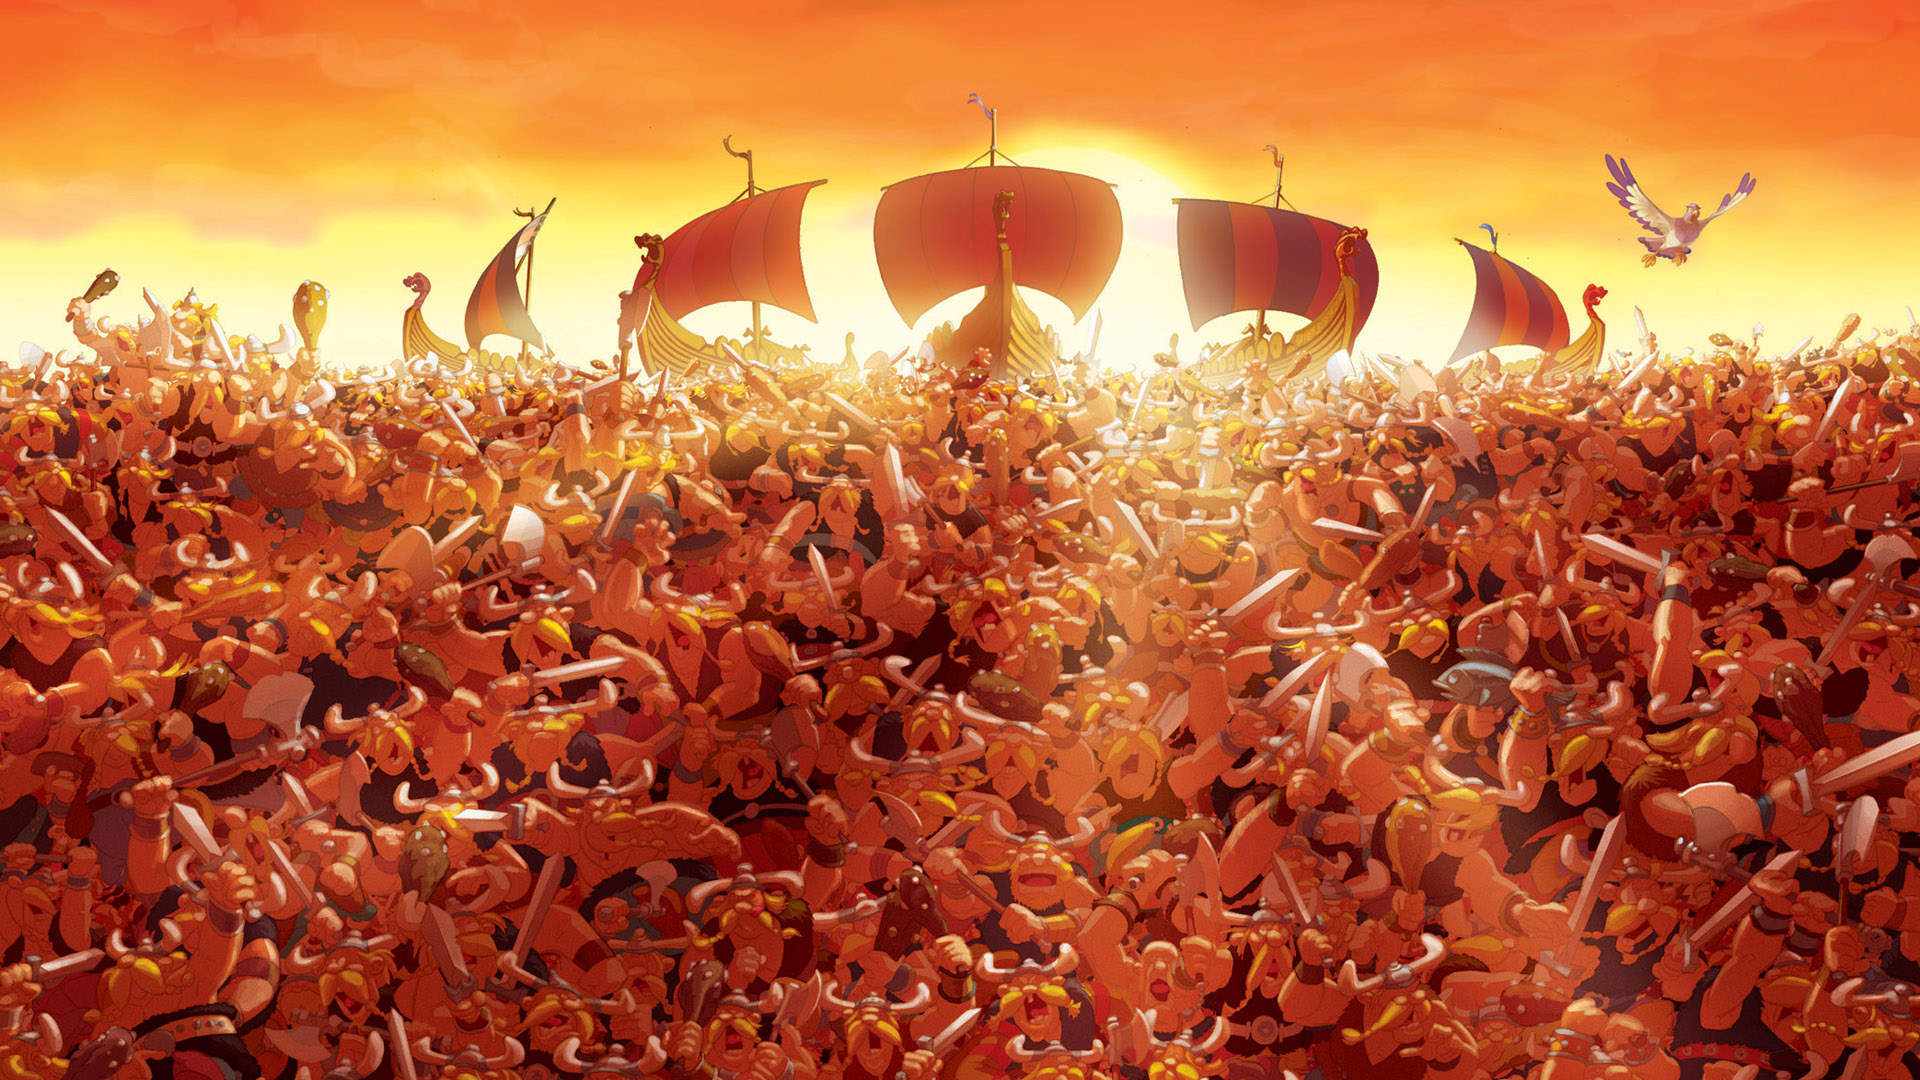 Asterix And The Vikings Backgrounds, Compatible - PC, Mobile, Gadgets| 1920x1080 px